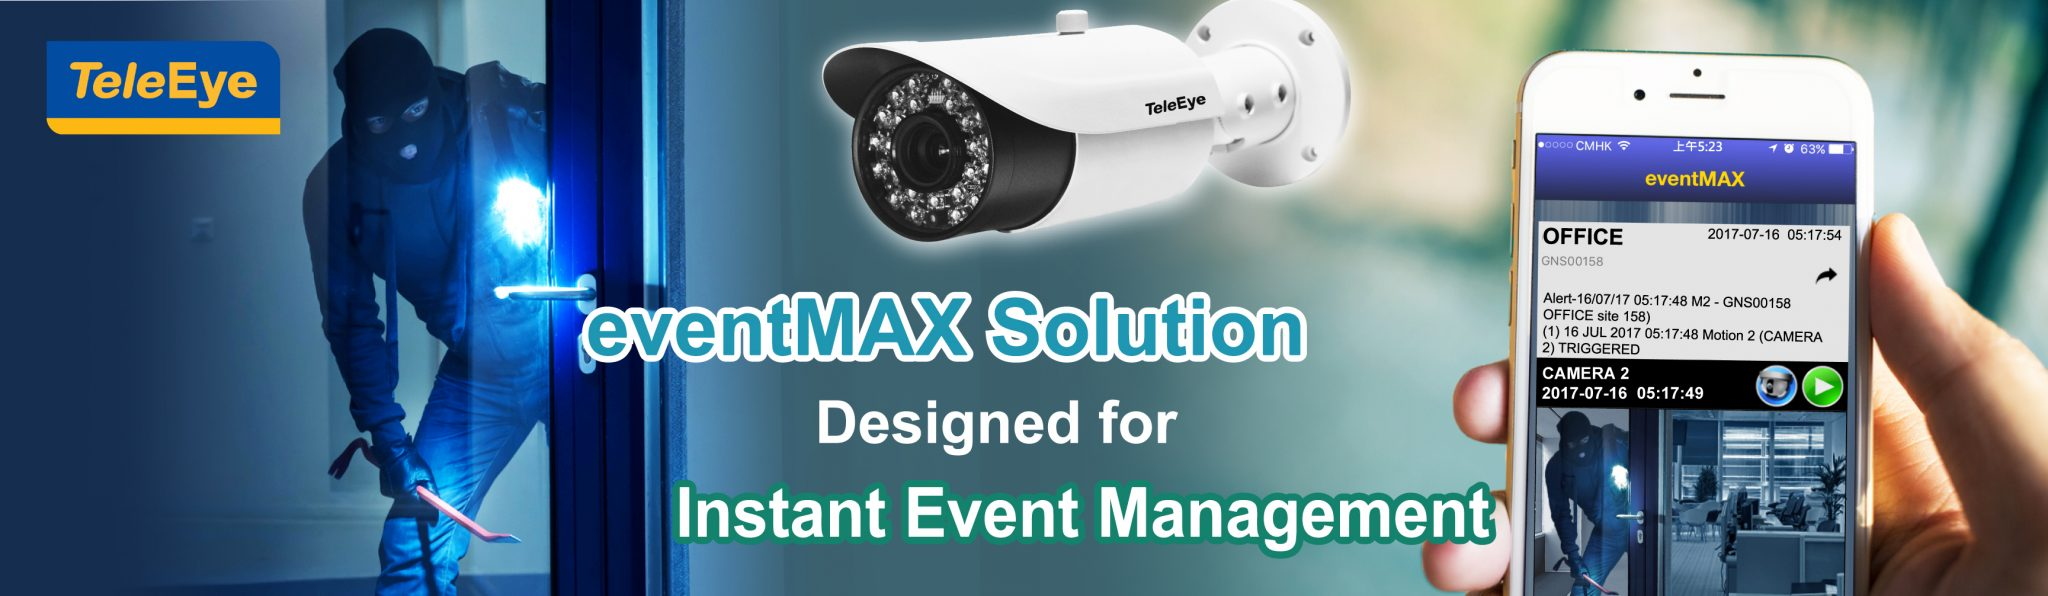 Intelligent Mobile Security eventMax Solution